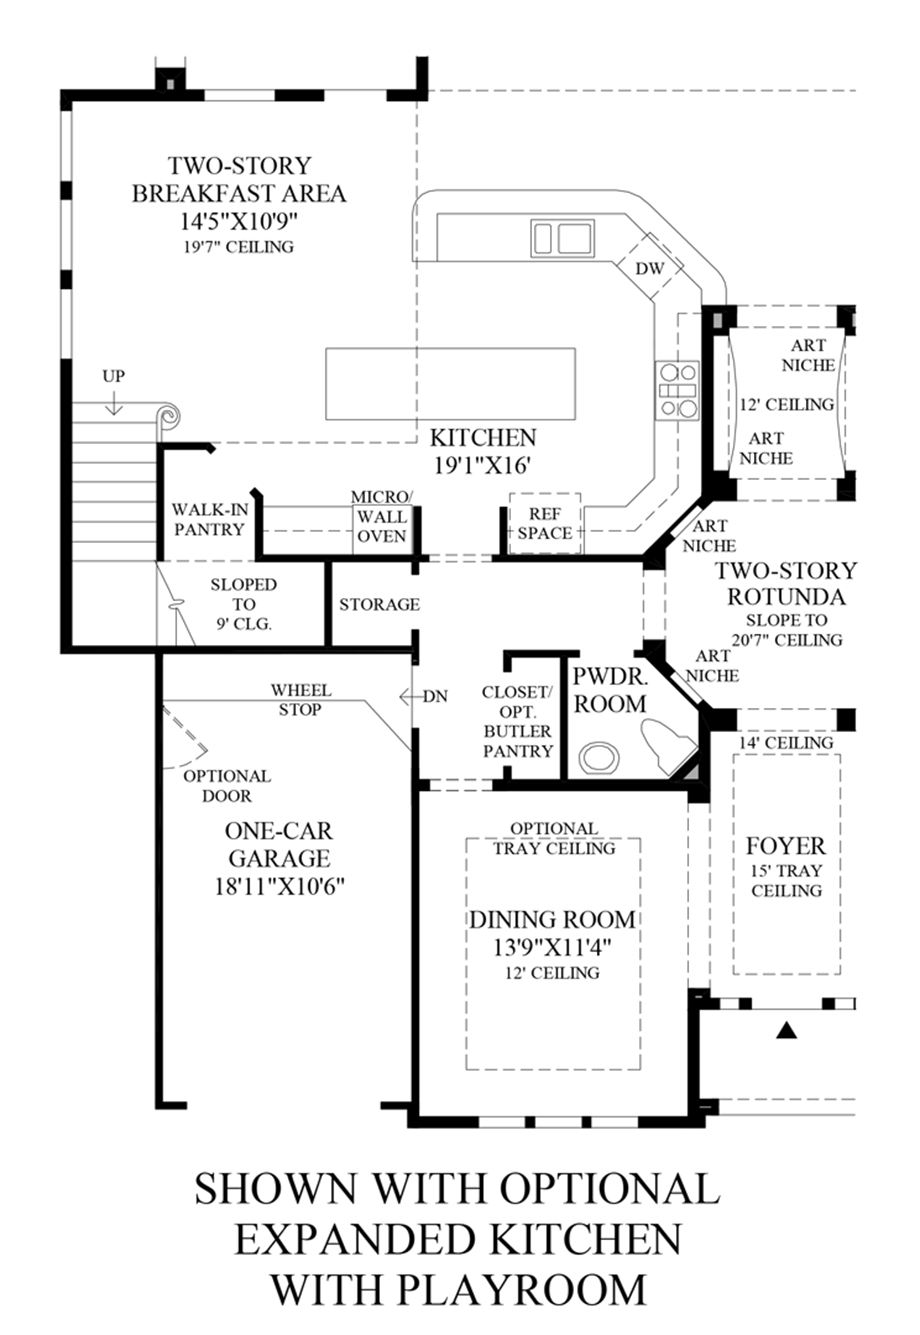 Optional Expanded Kitchen w/ Playroom Floor Plan